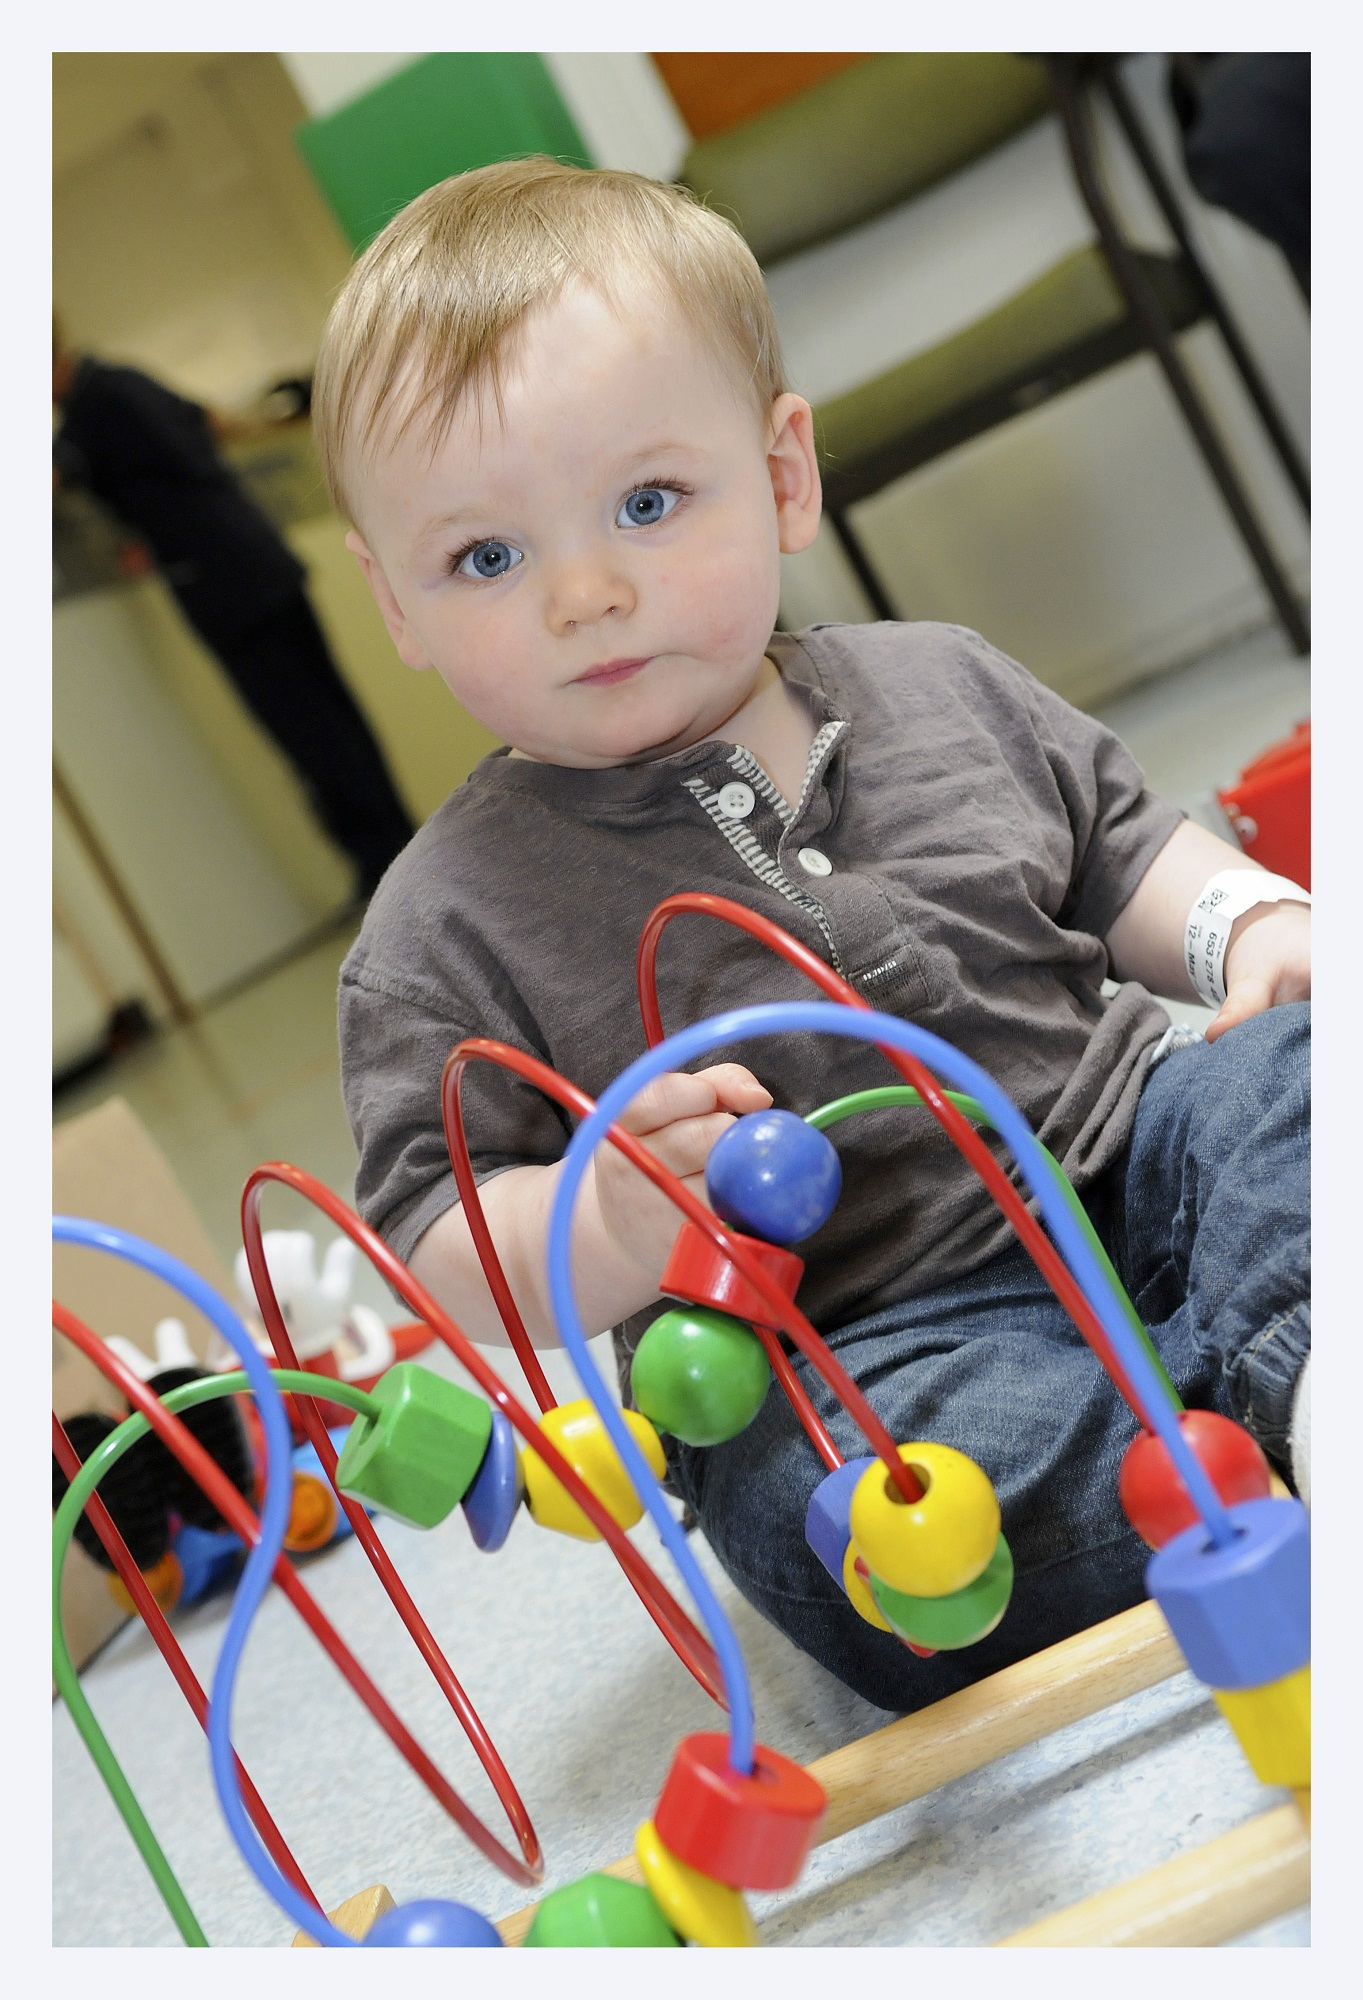 Clement Henderson has helped highlight the need for new play equipment for children admitted to A&E